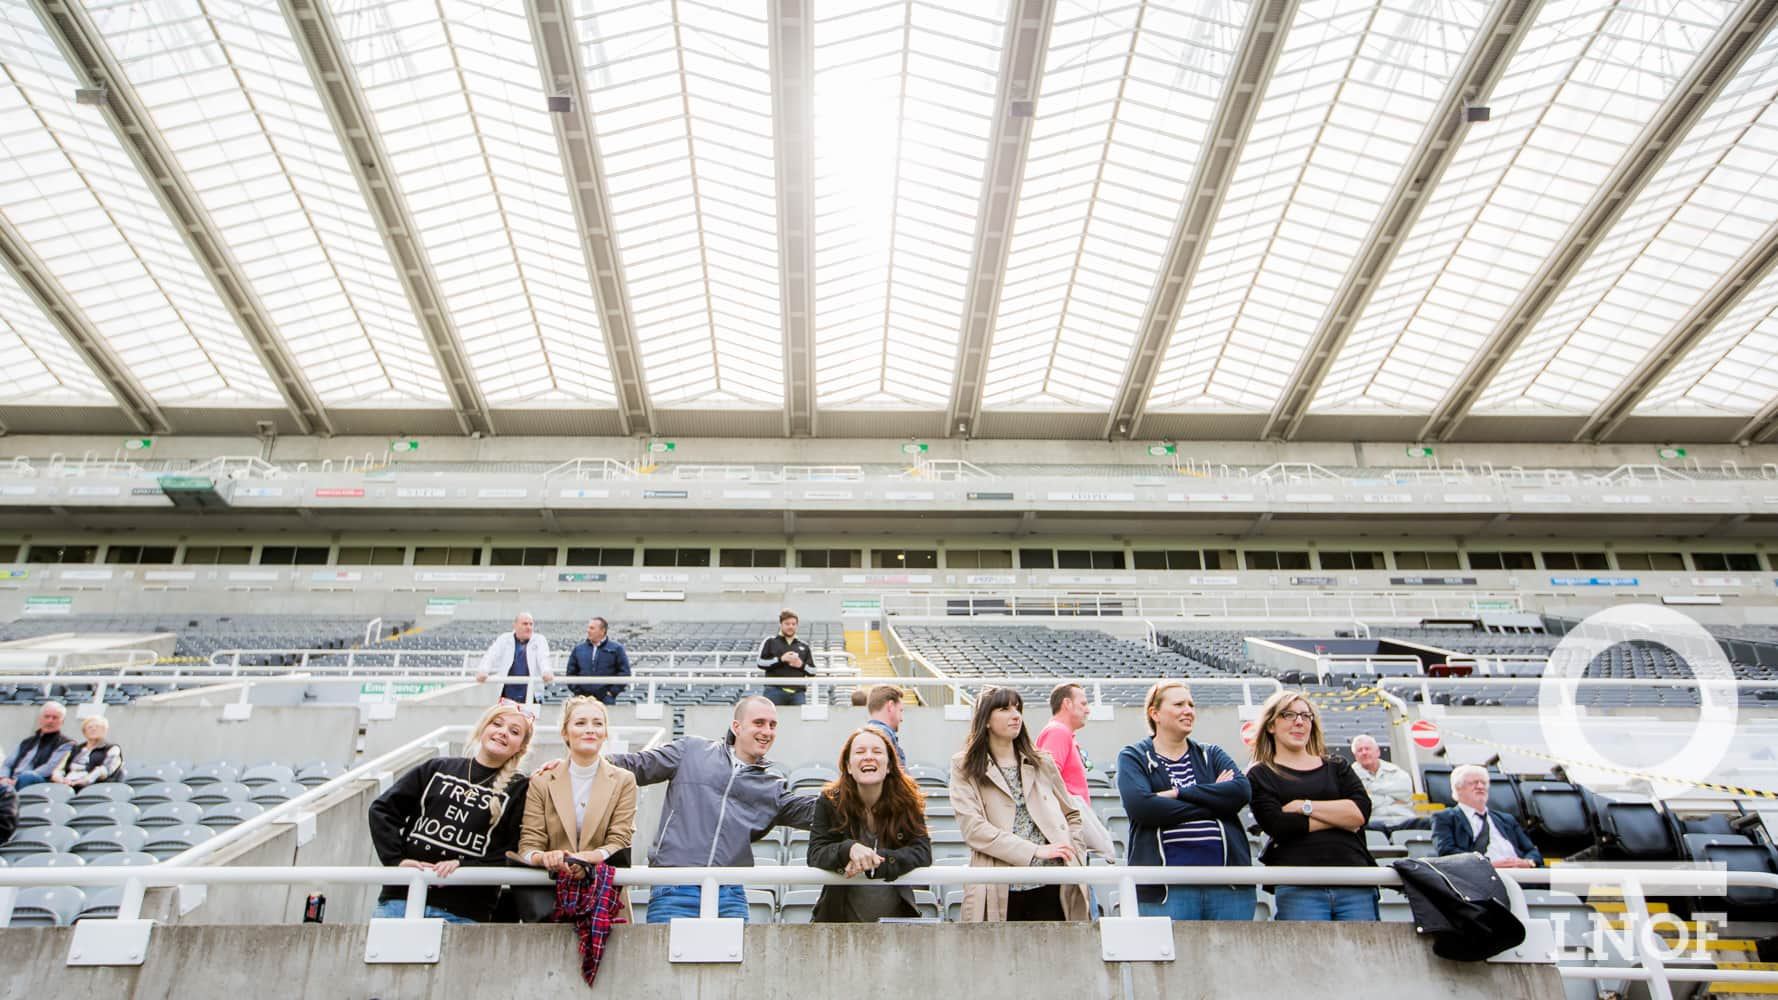 Spectators at St James' Park